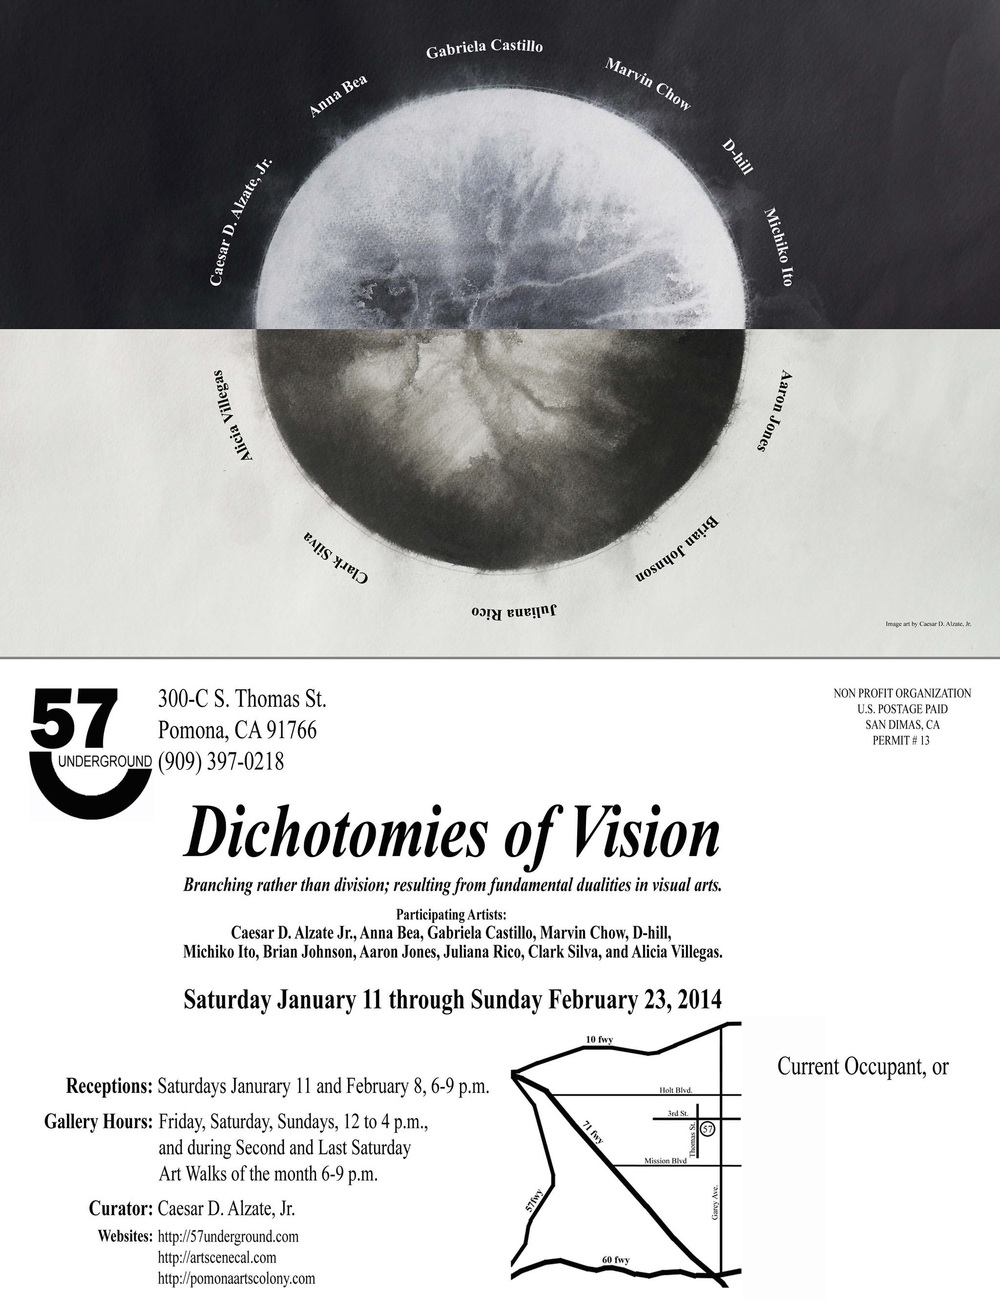 Dichotomies of Vision